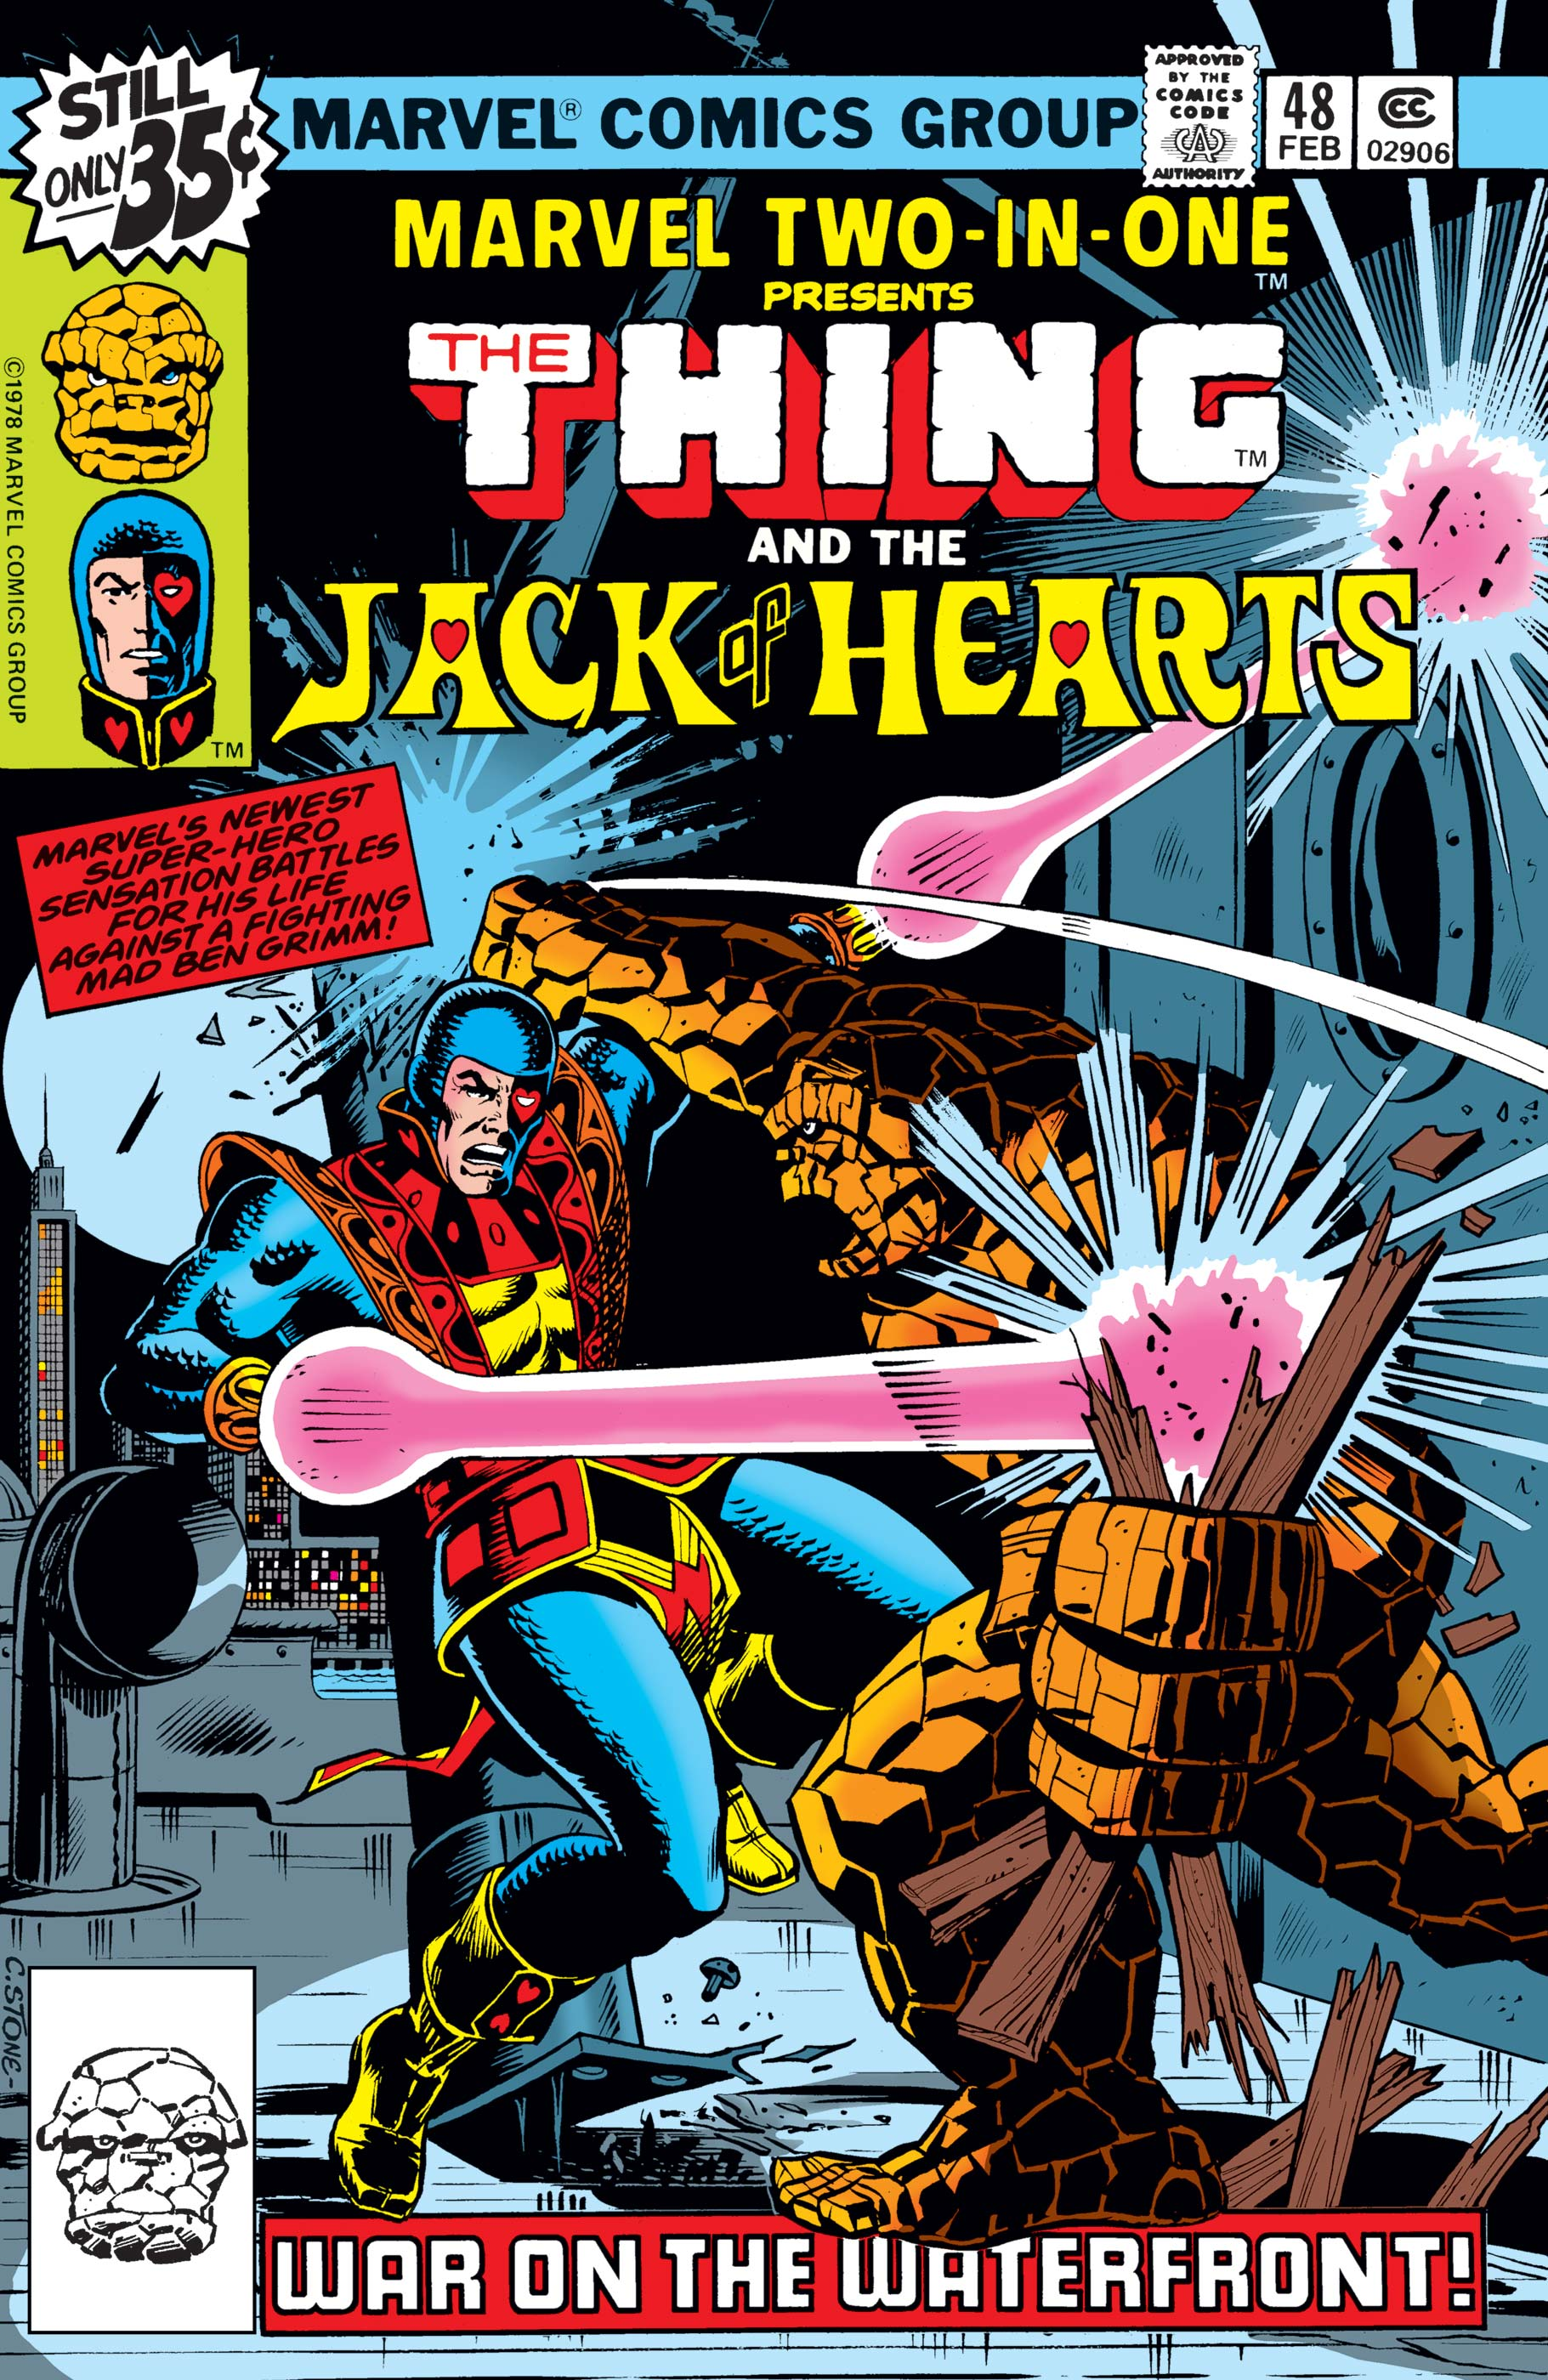 Marvel Two-in-One (1974) #48